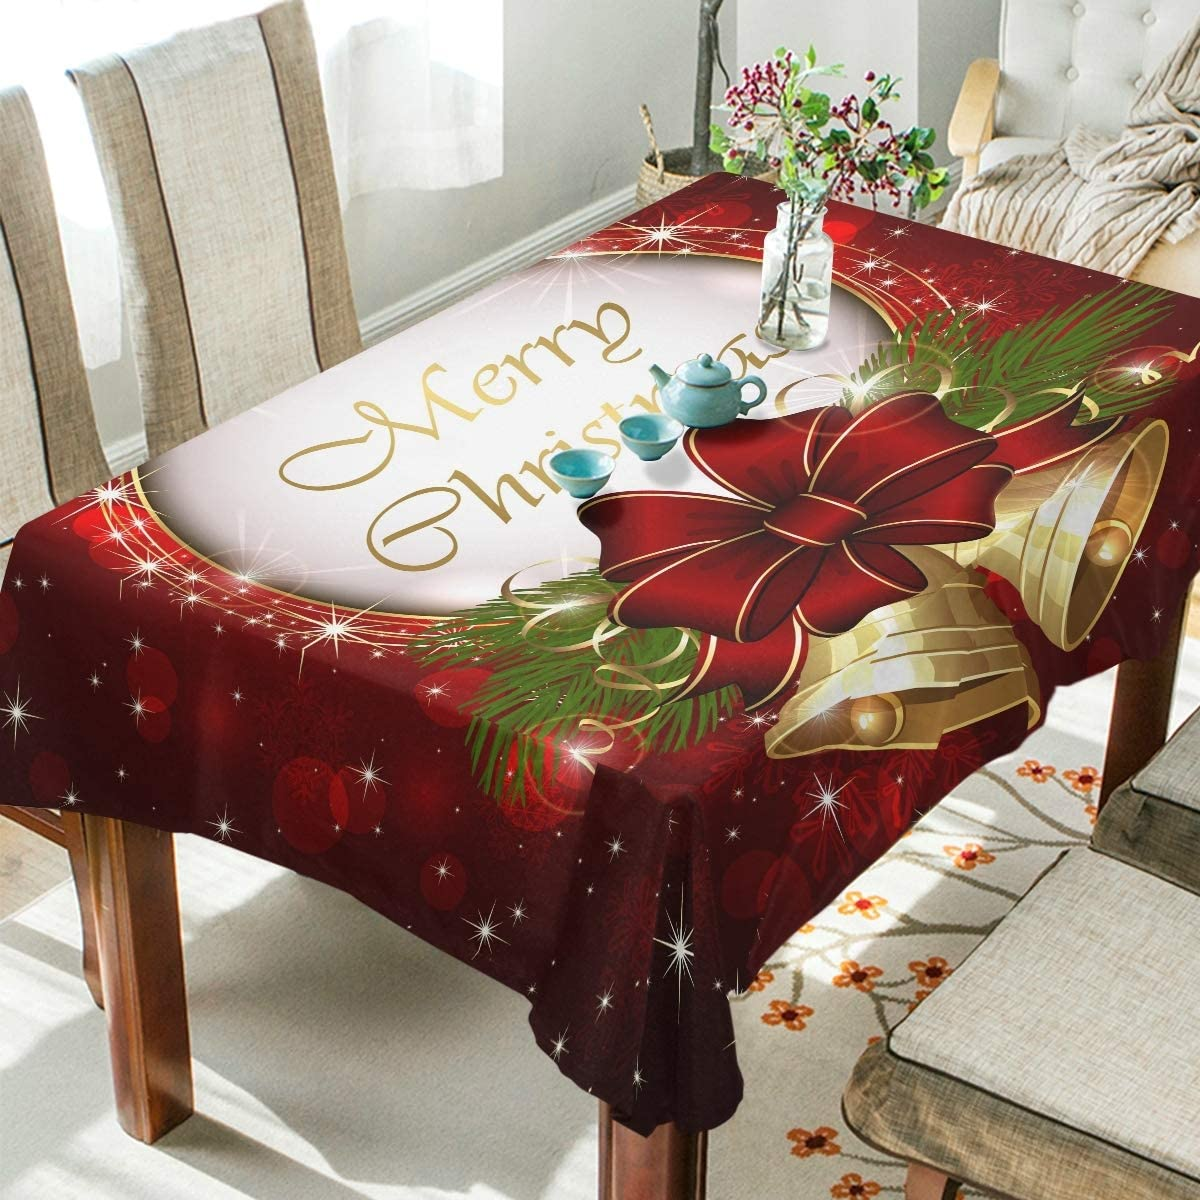 AGONA Square Tablecloth Christmas Bells Bow Snowflakes Tablecloths Round Washable Table Cover Wrinkle Free Anti-Fading Table Cloth for Picnic Kitchen Dinning Tabletop Decor 54x54 inch